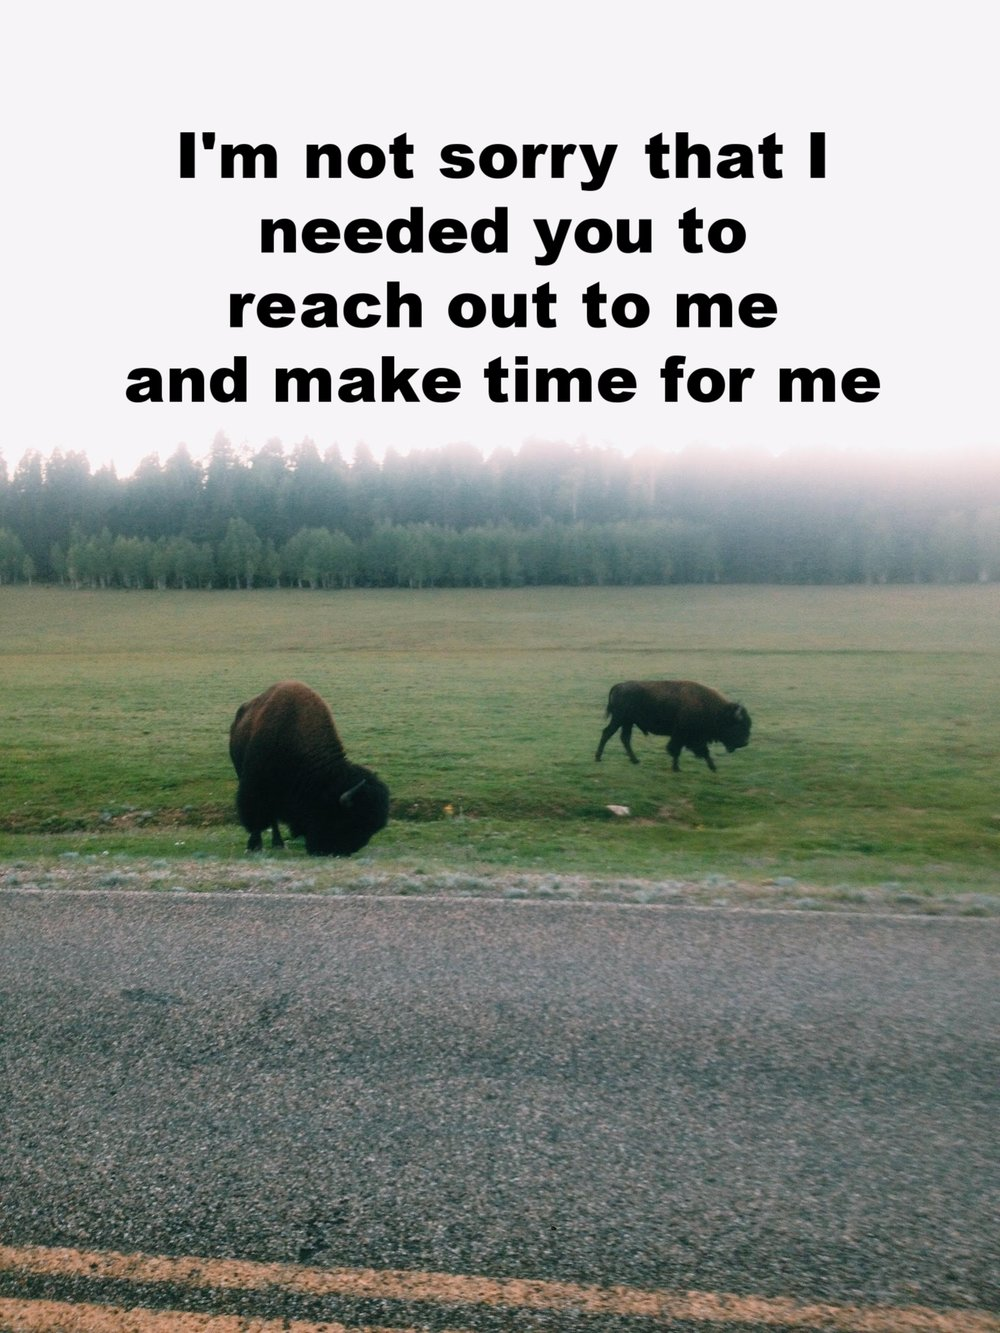 """Anonymous November 22 2016 Image of two buffalo in a field. """"I'm not sorry that I needed you to reach out to me and make time for me"""" is overlaid."""